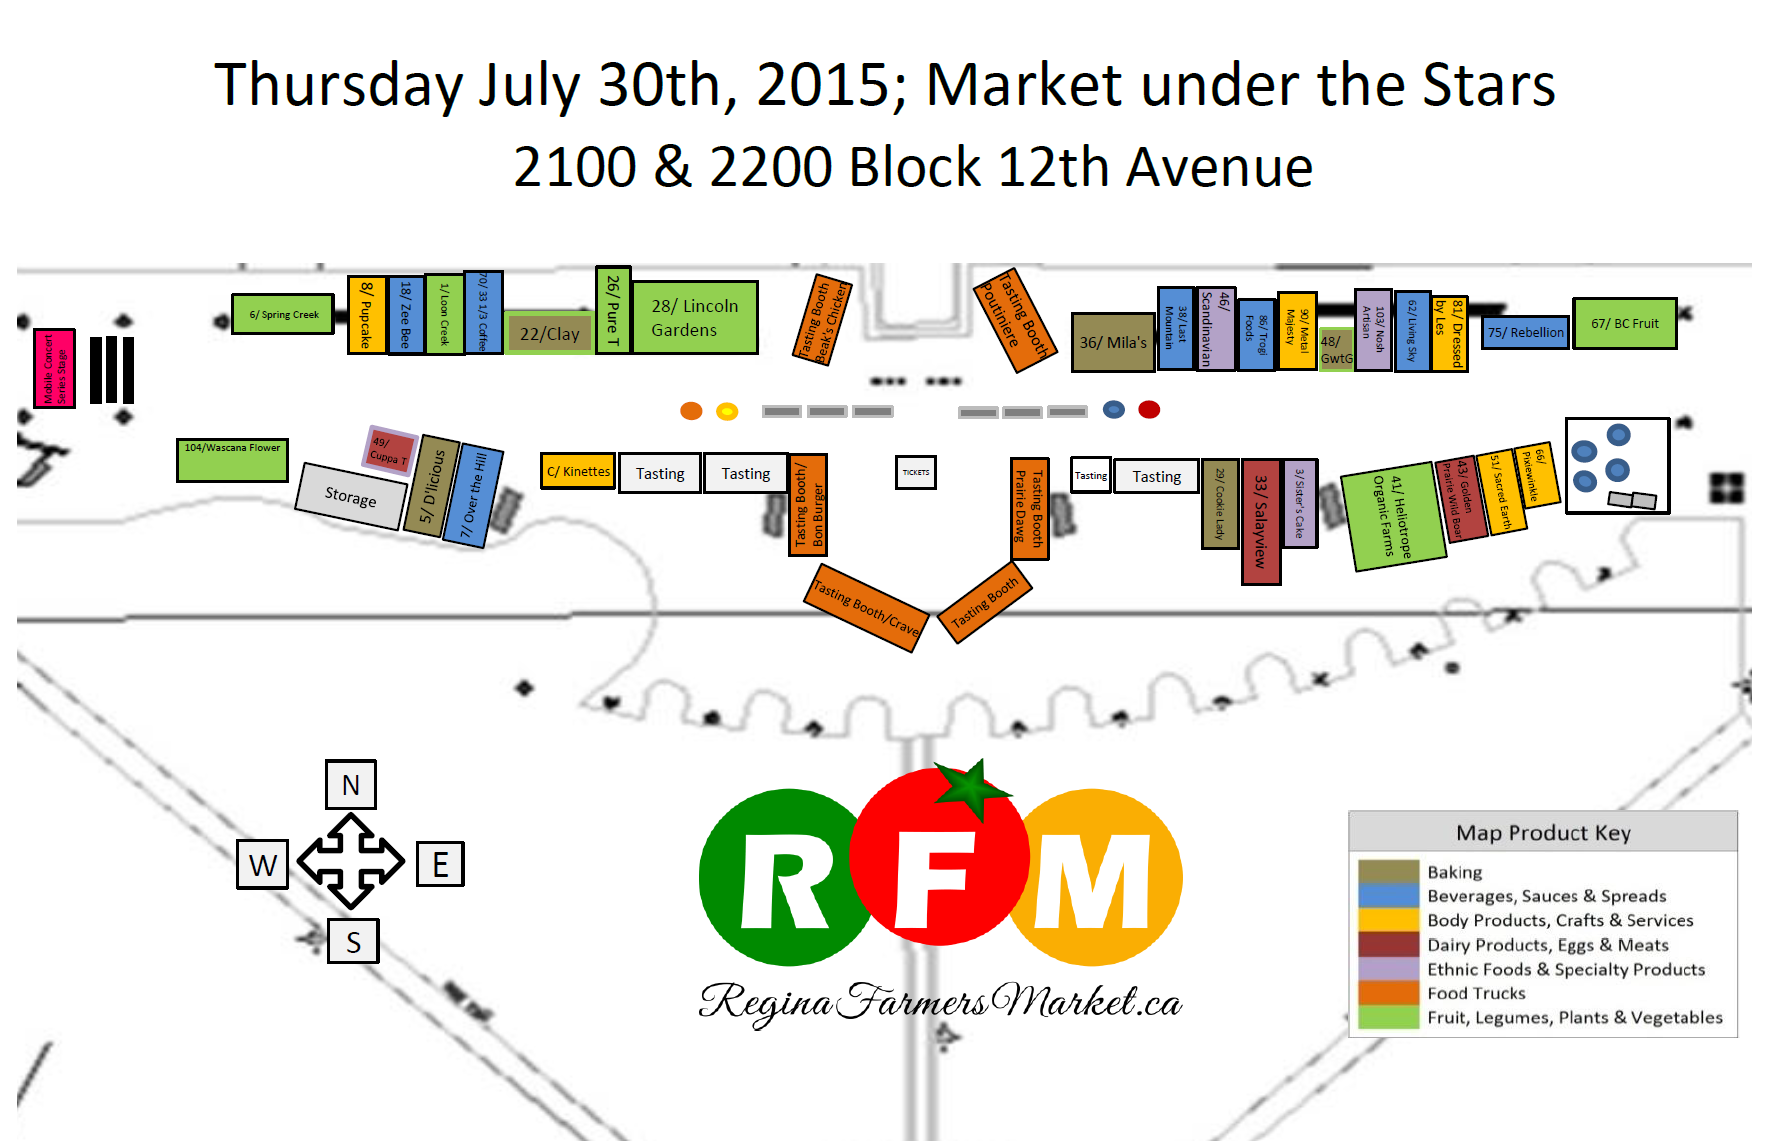 July 30th Market under the Stars Map: Eat, Drink, and Be Merry! - Image 1